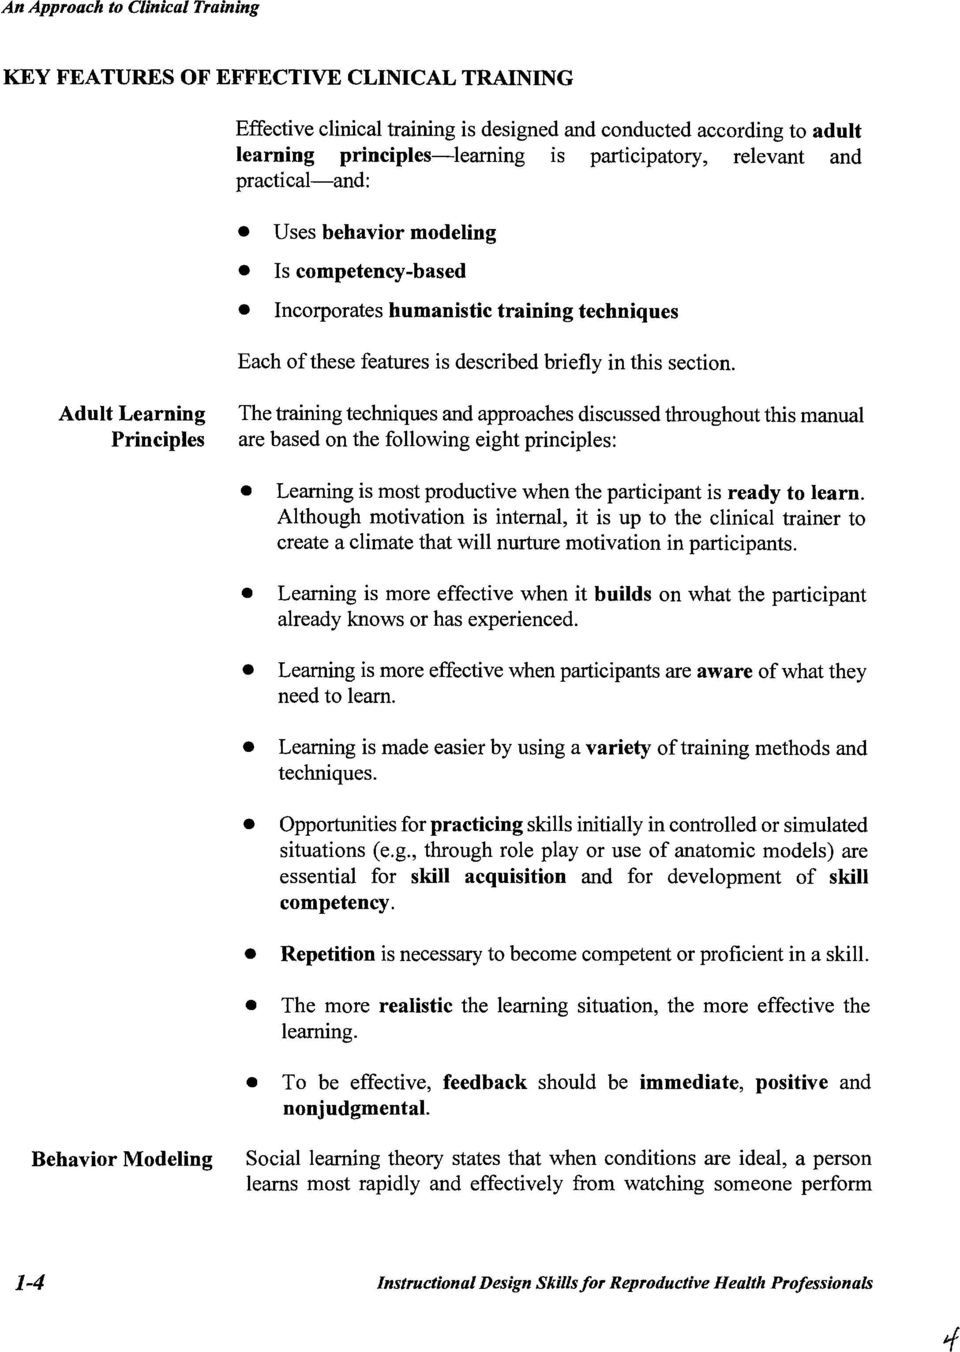 Adult Learning Principles The training techniques and approaches discussed throughout this manual are based on the following eight principles: Learning is most productive when the participant is